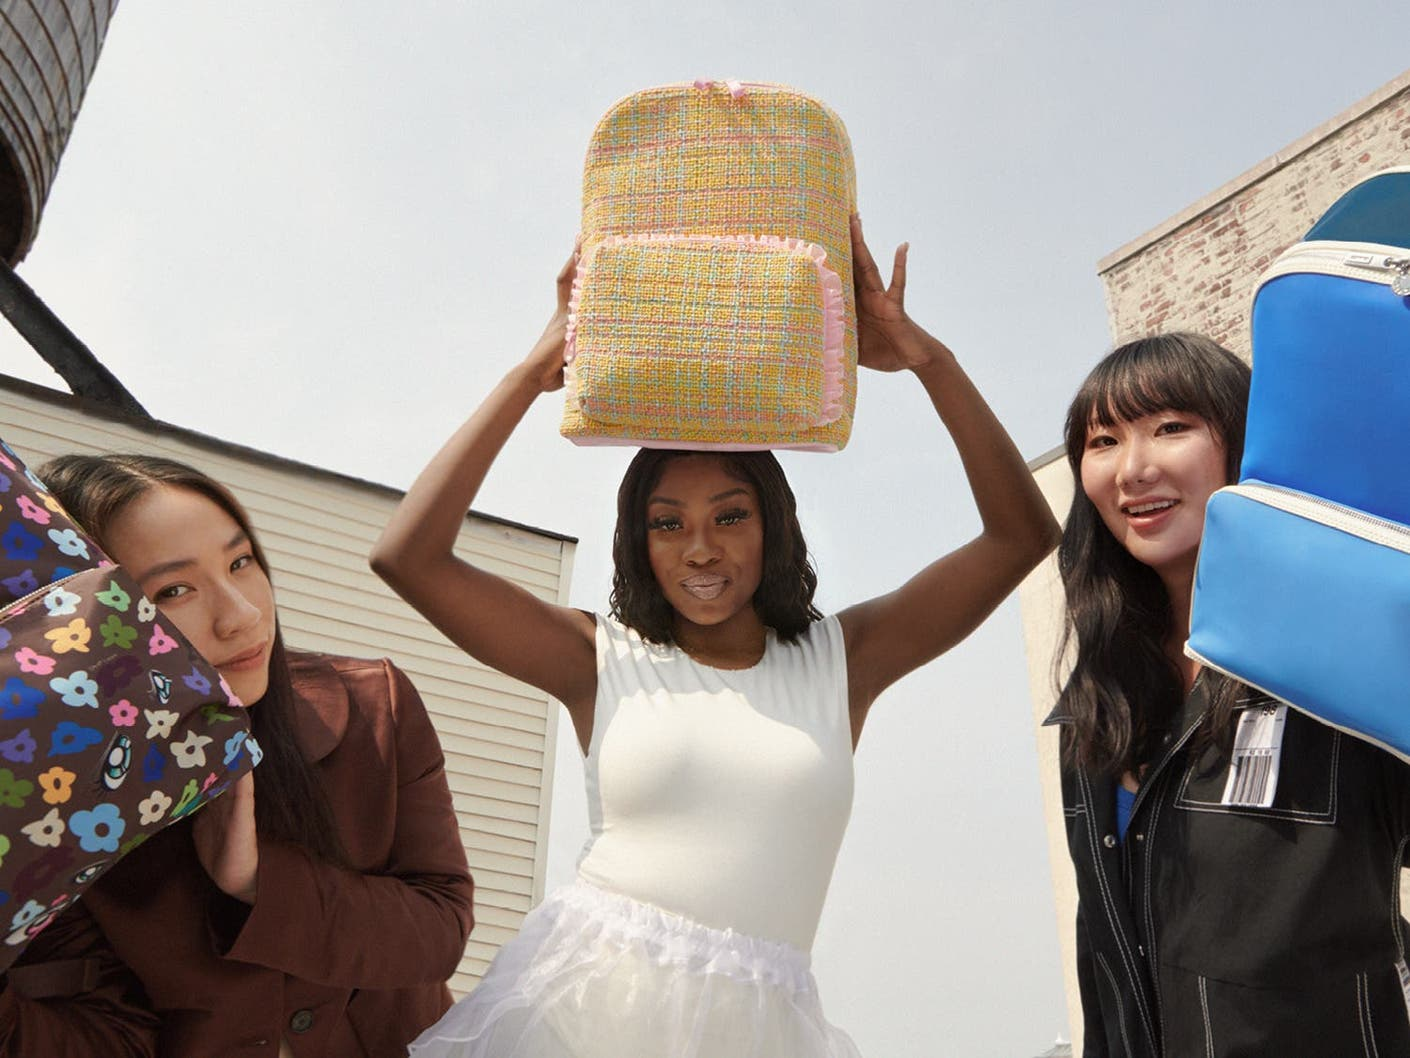 3 Designers, from right to left, Sandy Liang, Tia Adeola and Ji Won Choi, posing with their limited edition Front Pocket Backpacks.